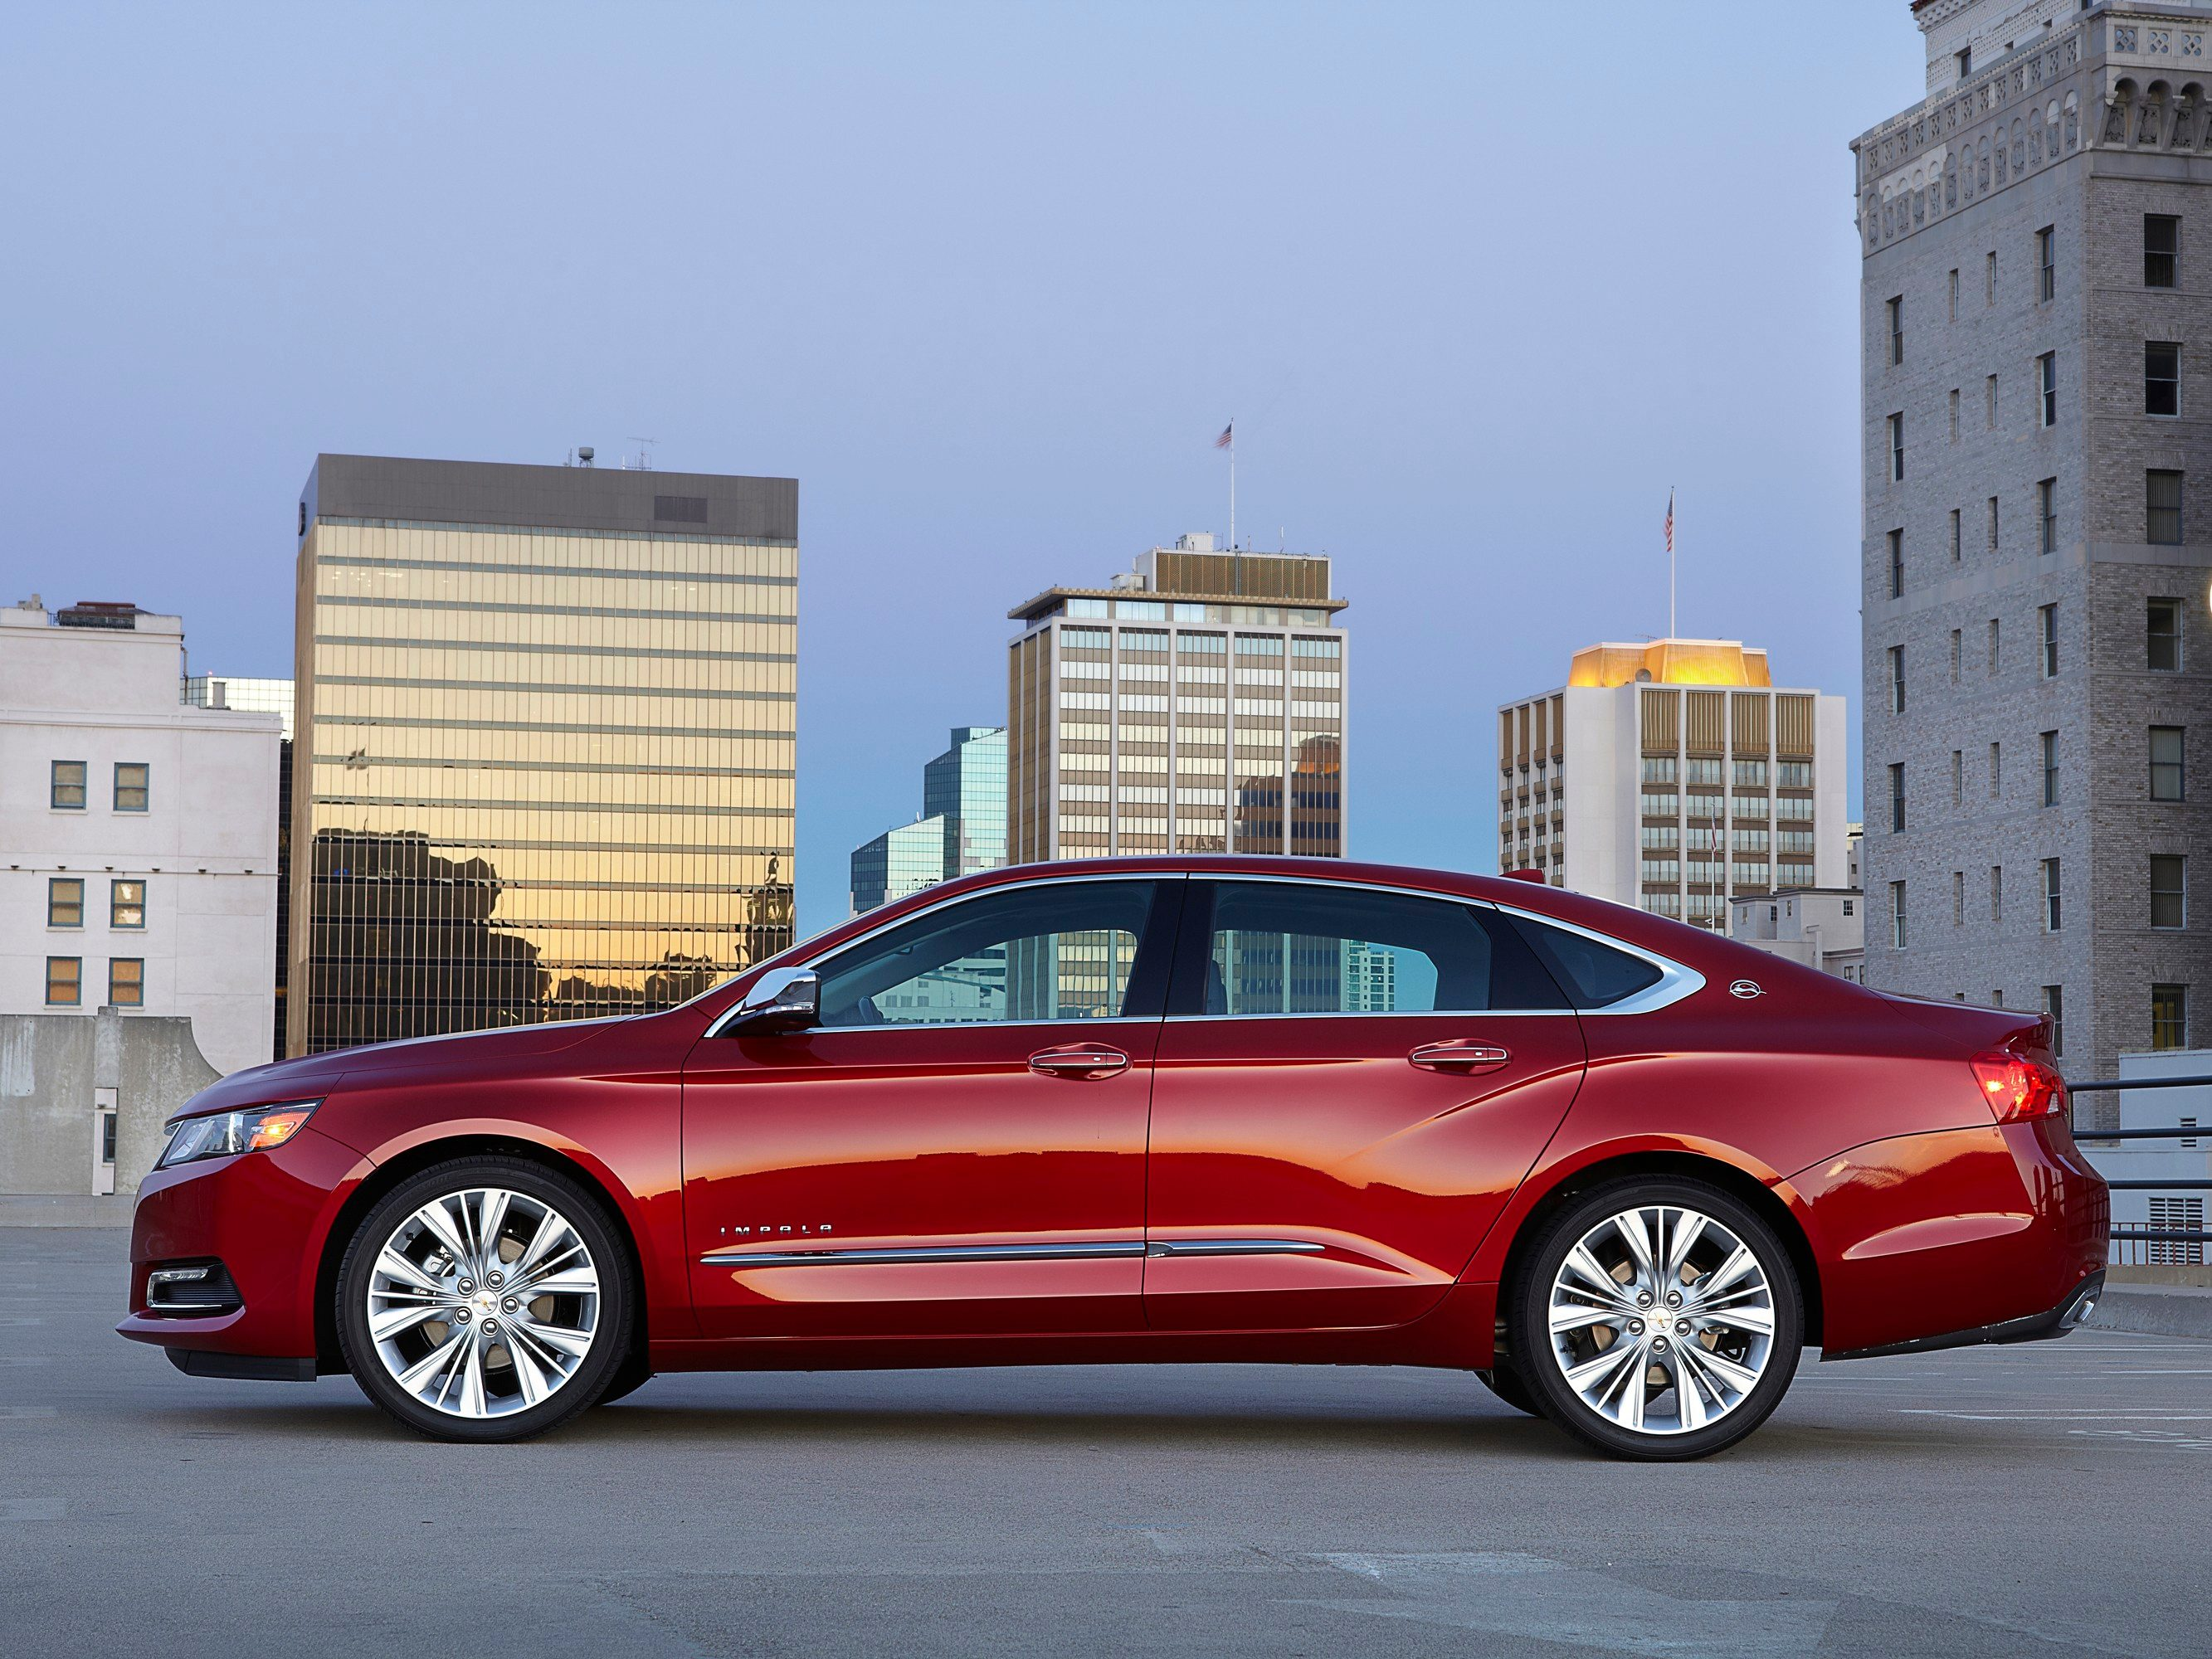 5. The 2016 Chevrolet Impala boasts new safety features.